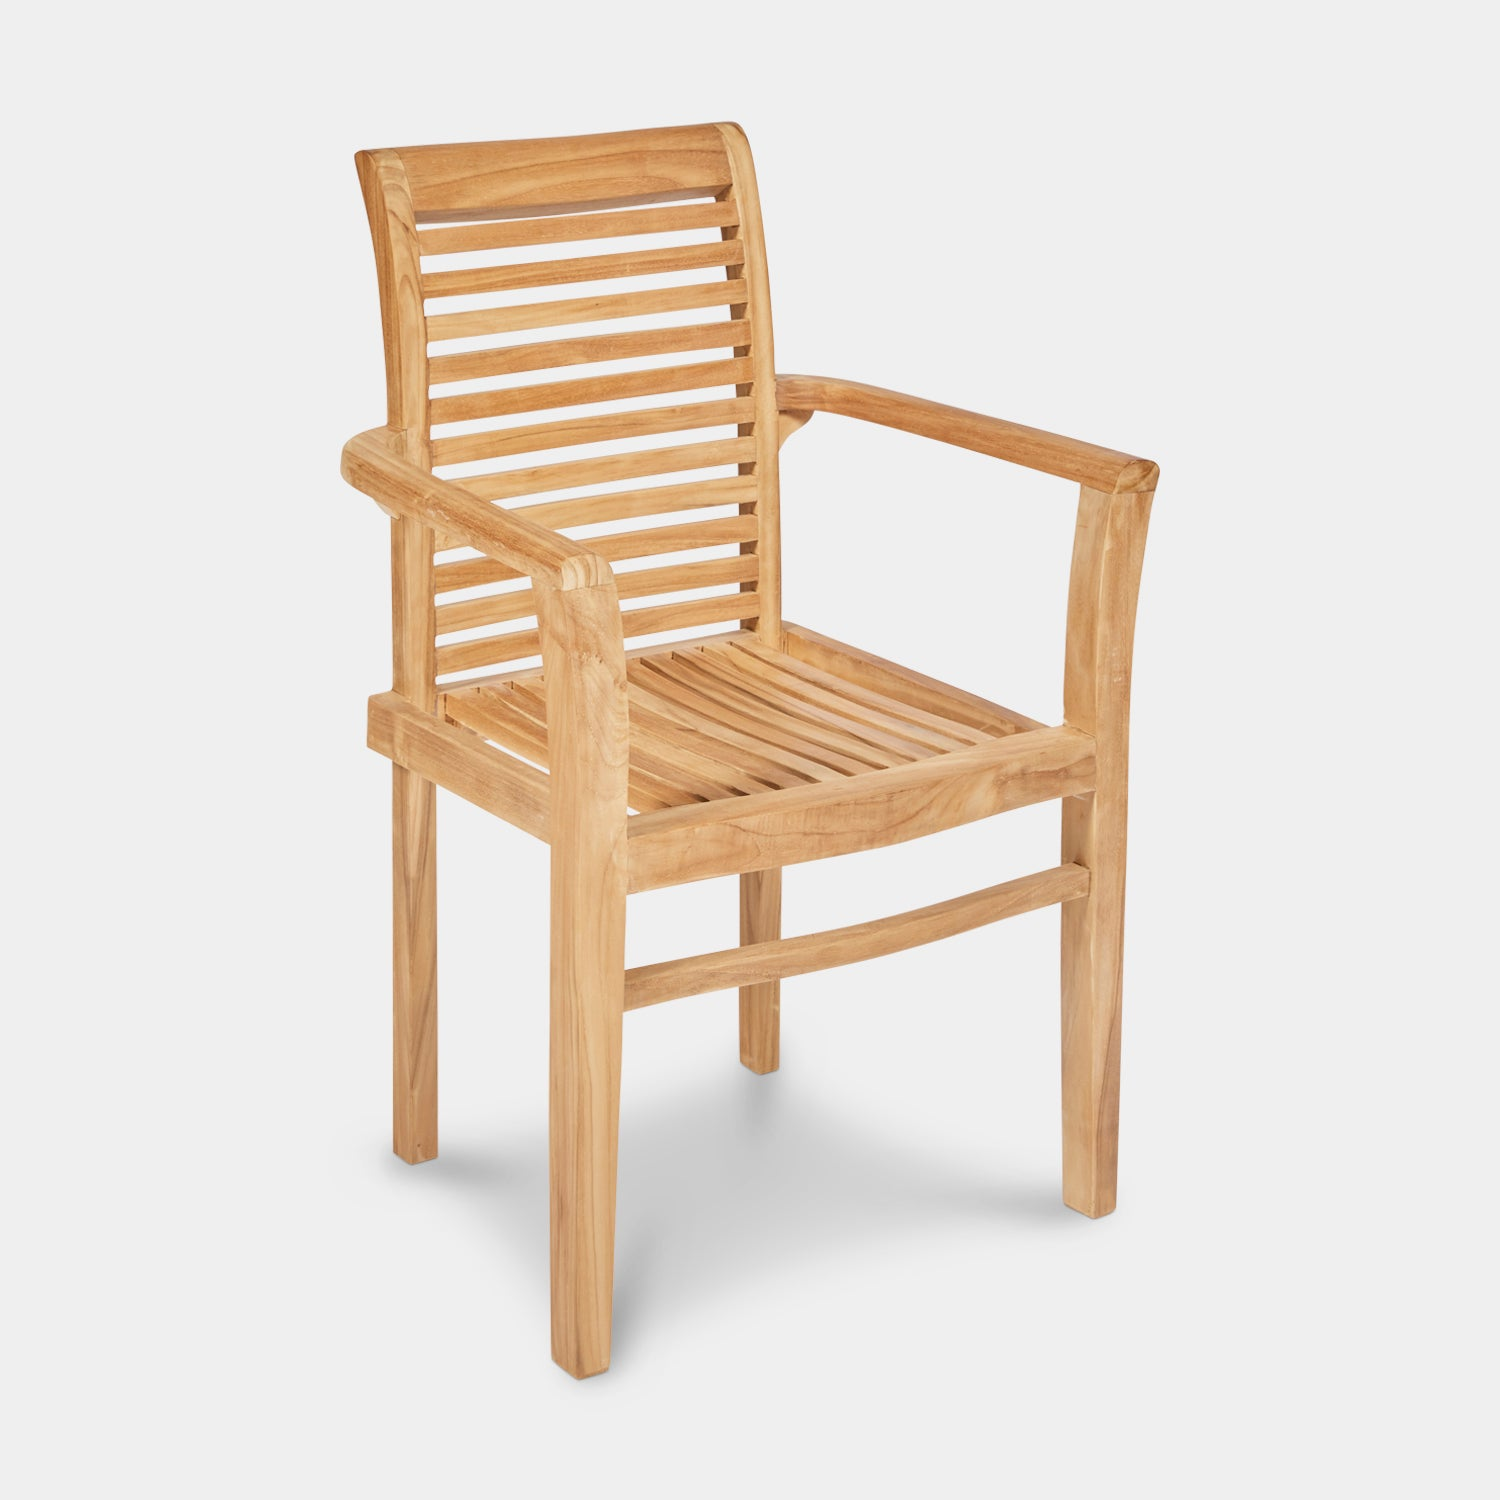 Teak-Outdoor-dining-chair-Blaxland-With-Arms-r1